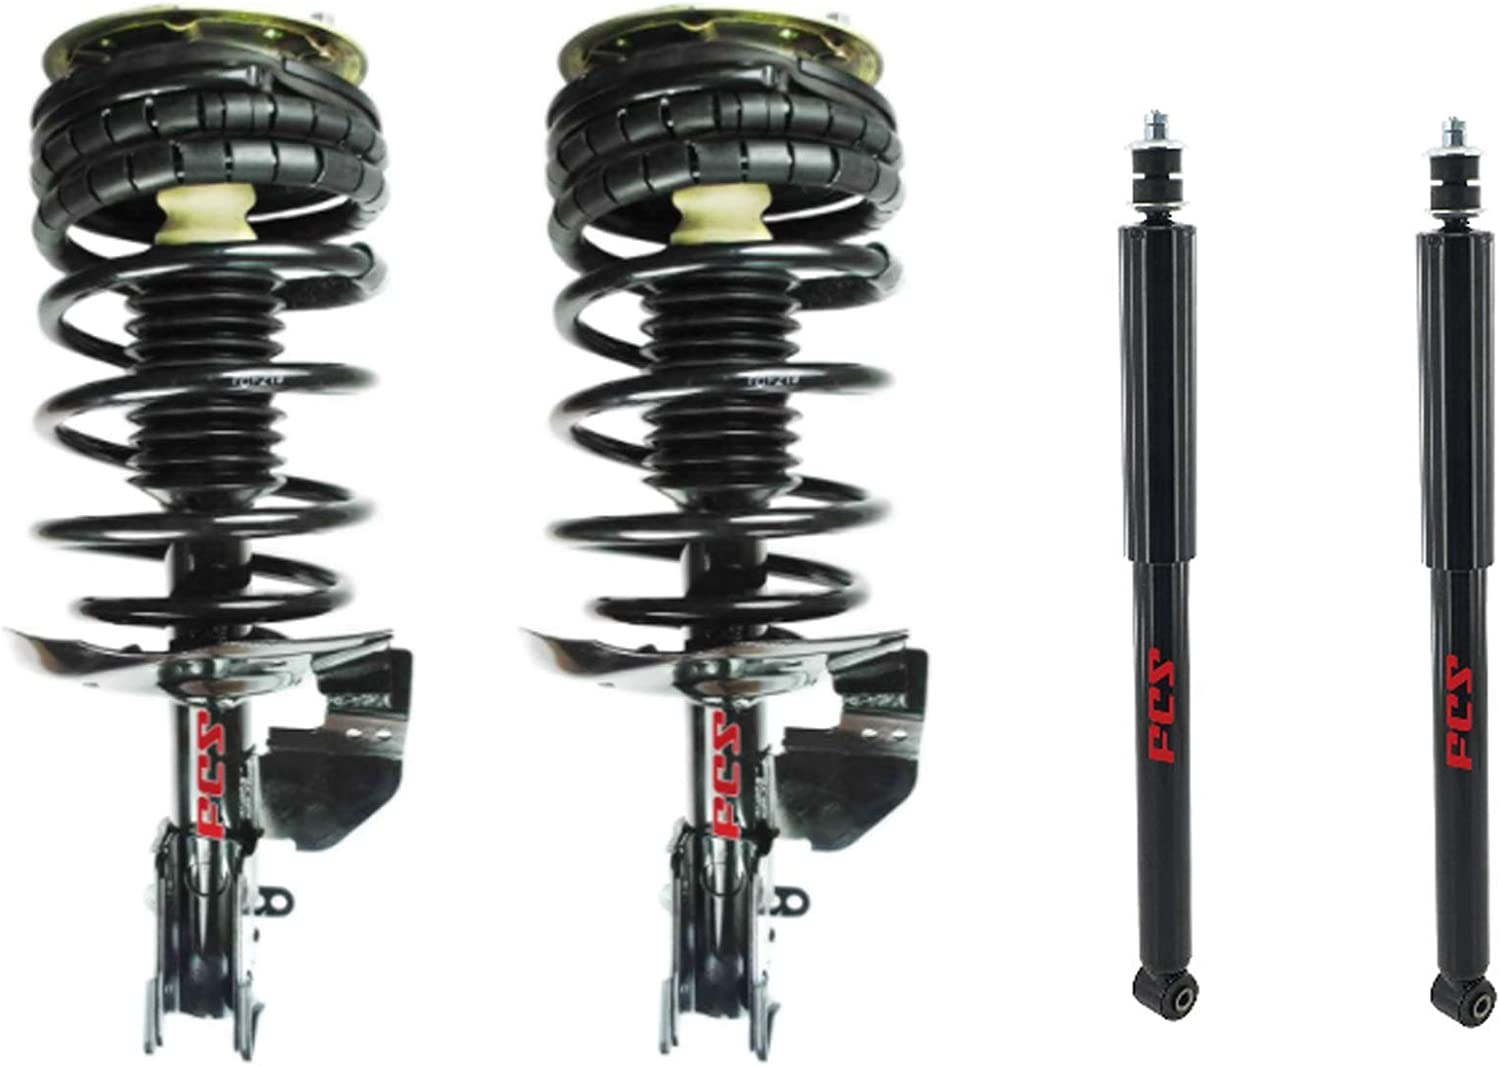 FCS Front Struts and Coil Springs Rear Shocks Kit For Buick Chevy Oldsmobile FWD